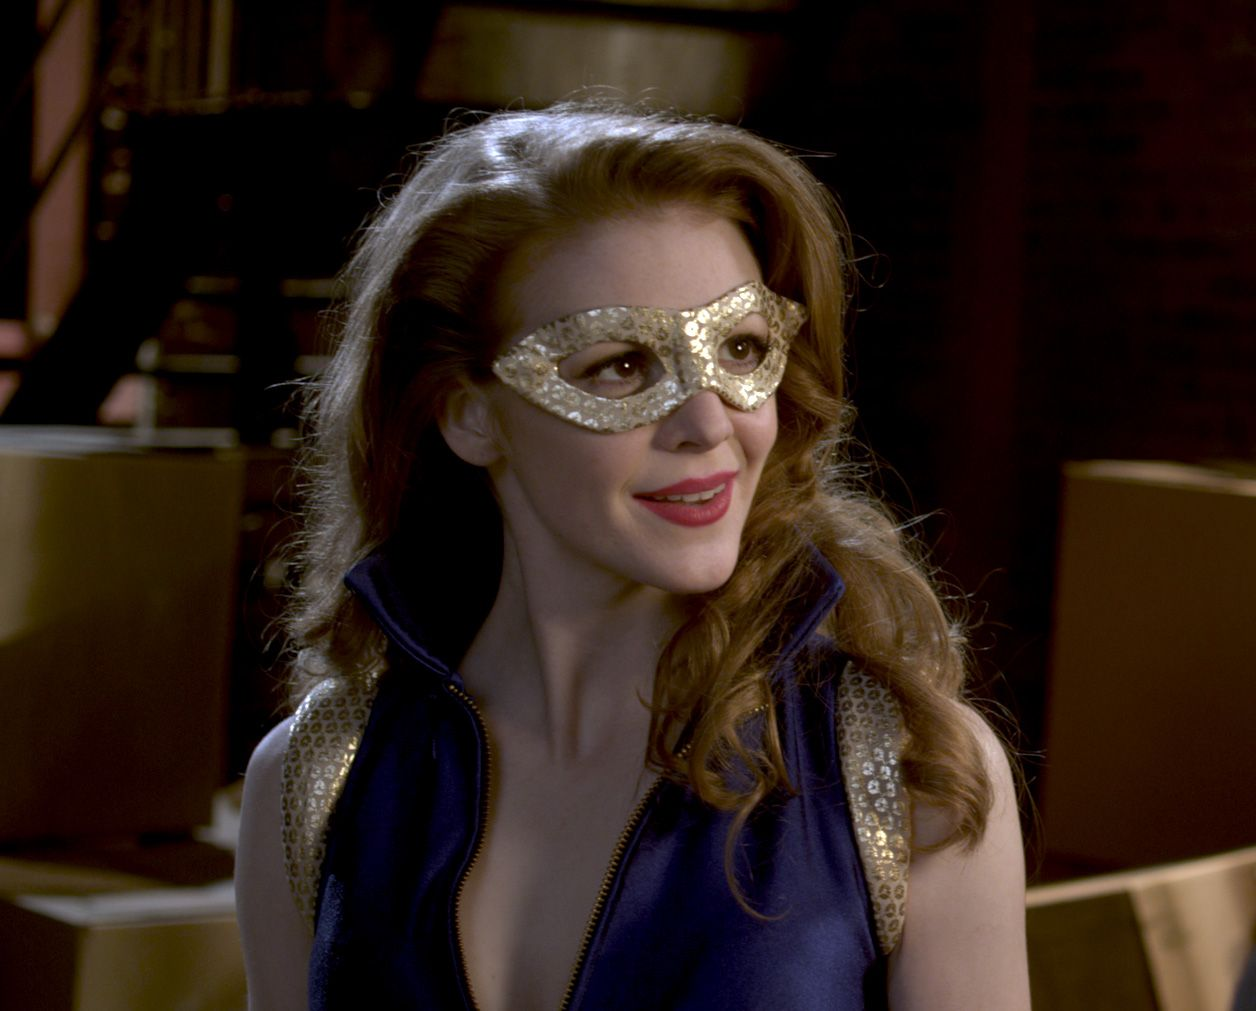 Ashley Bell as Lady Heavenly in Sparks (2013)